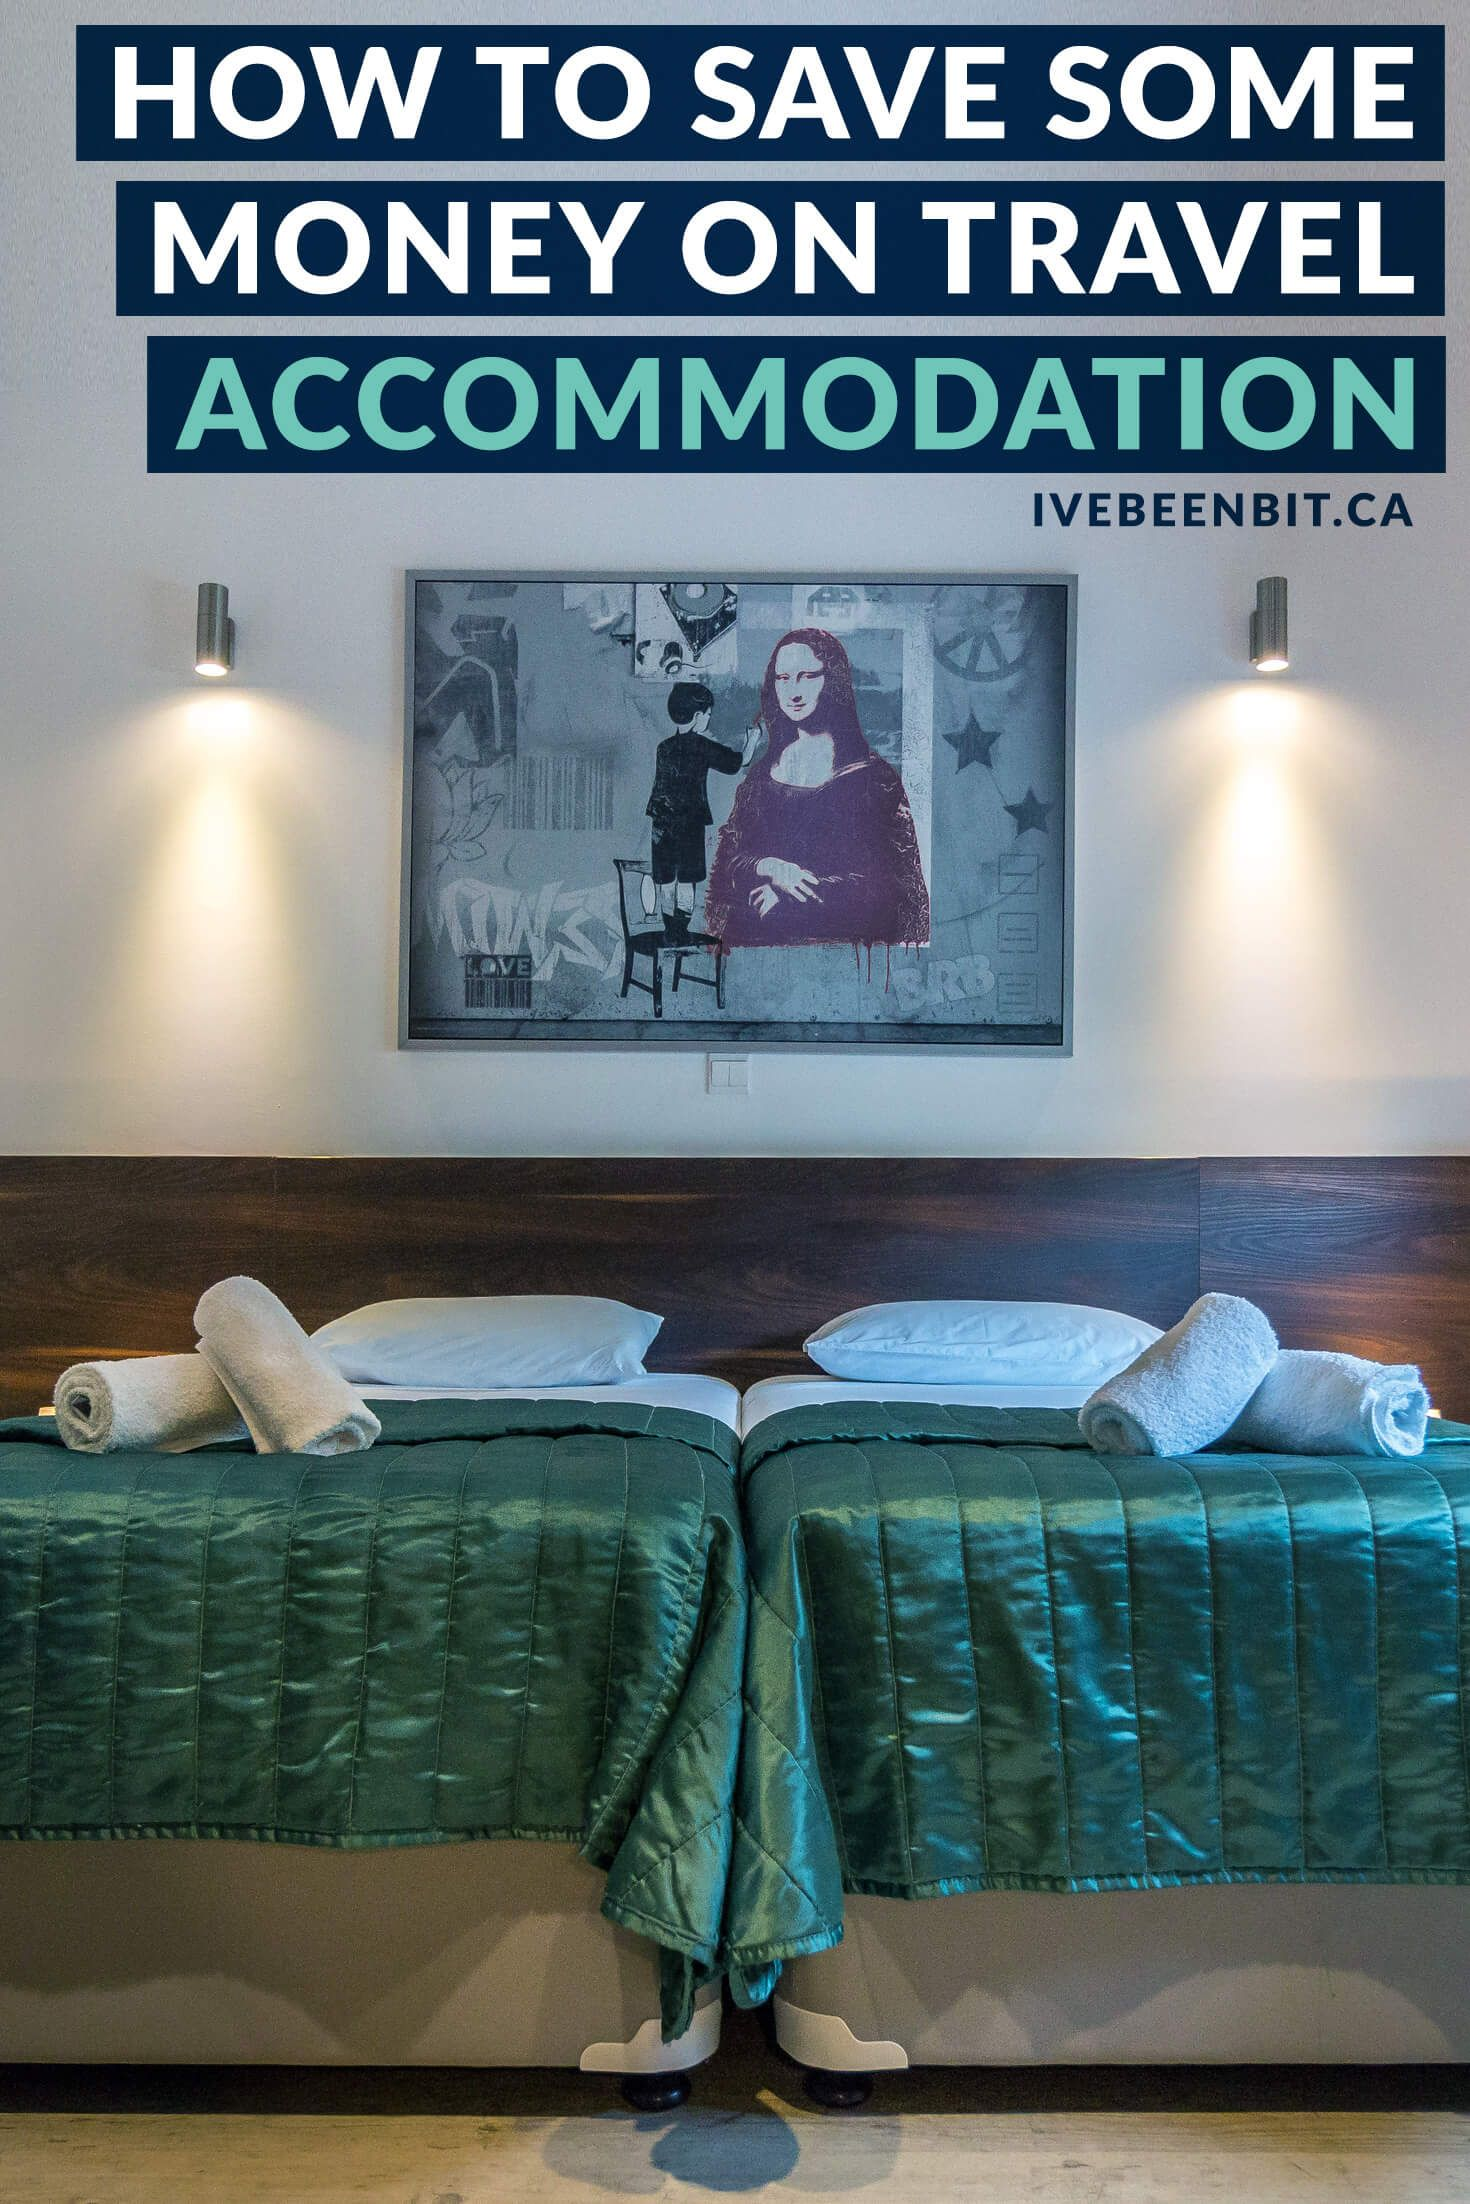 From hotels to Airbnb and more, see how you can keep more money in your pocket as you travel. There is no magic website that will find you the best hotel deals, but this guide has tips for saving money on accommodation! | #Travel #Accommodation #Hotels #HotelDeals | IveBeenBit.ca